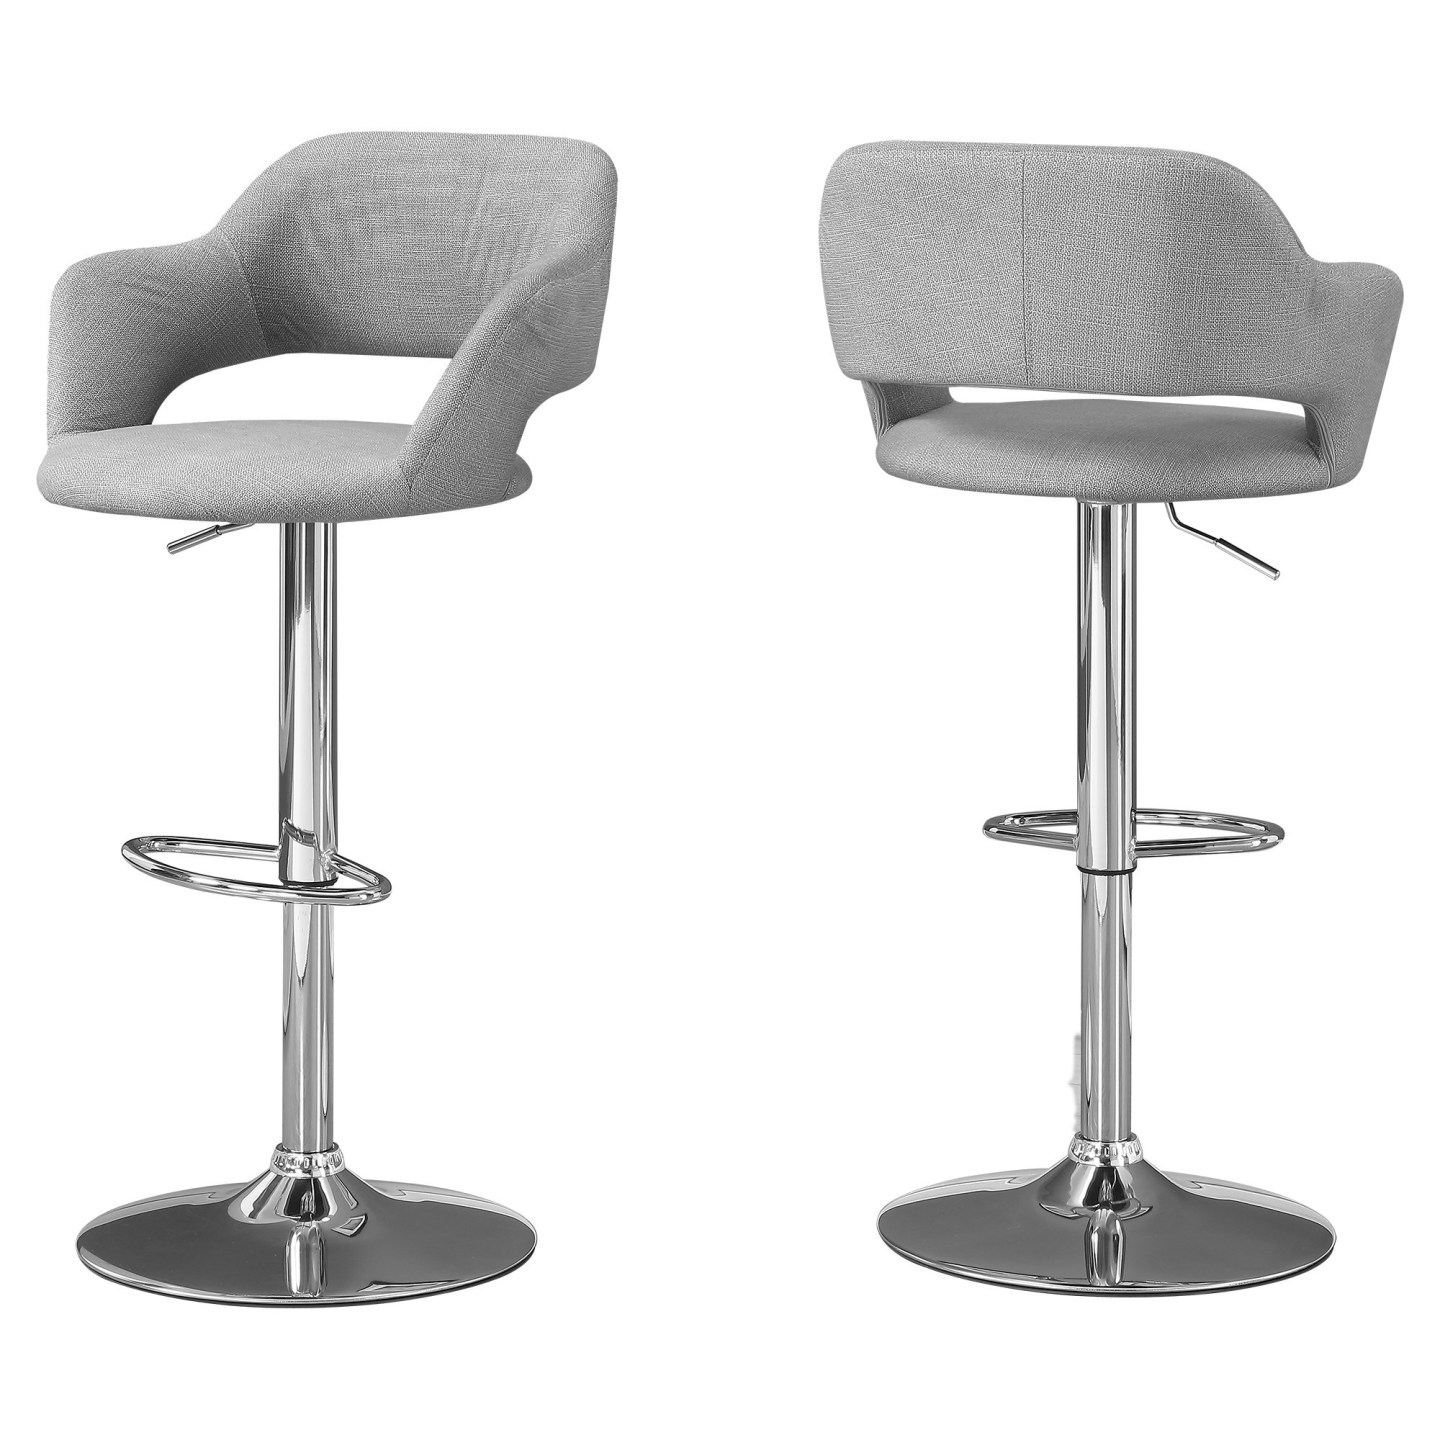 Monarch Contemporary Linen Curved Seat Back Chrome Base Hydraulic Lift Swivel Barstool Chair - Grey Finish